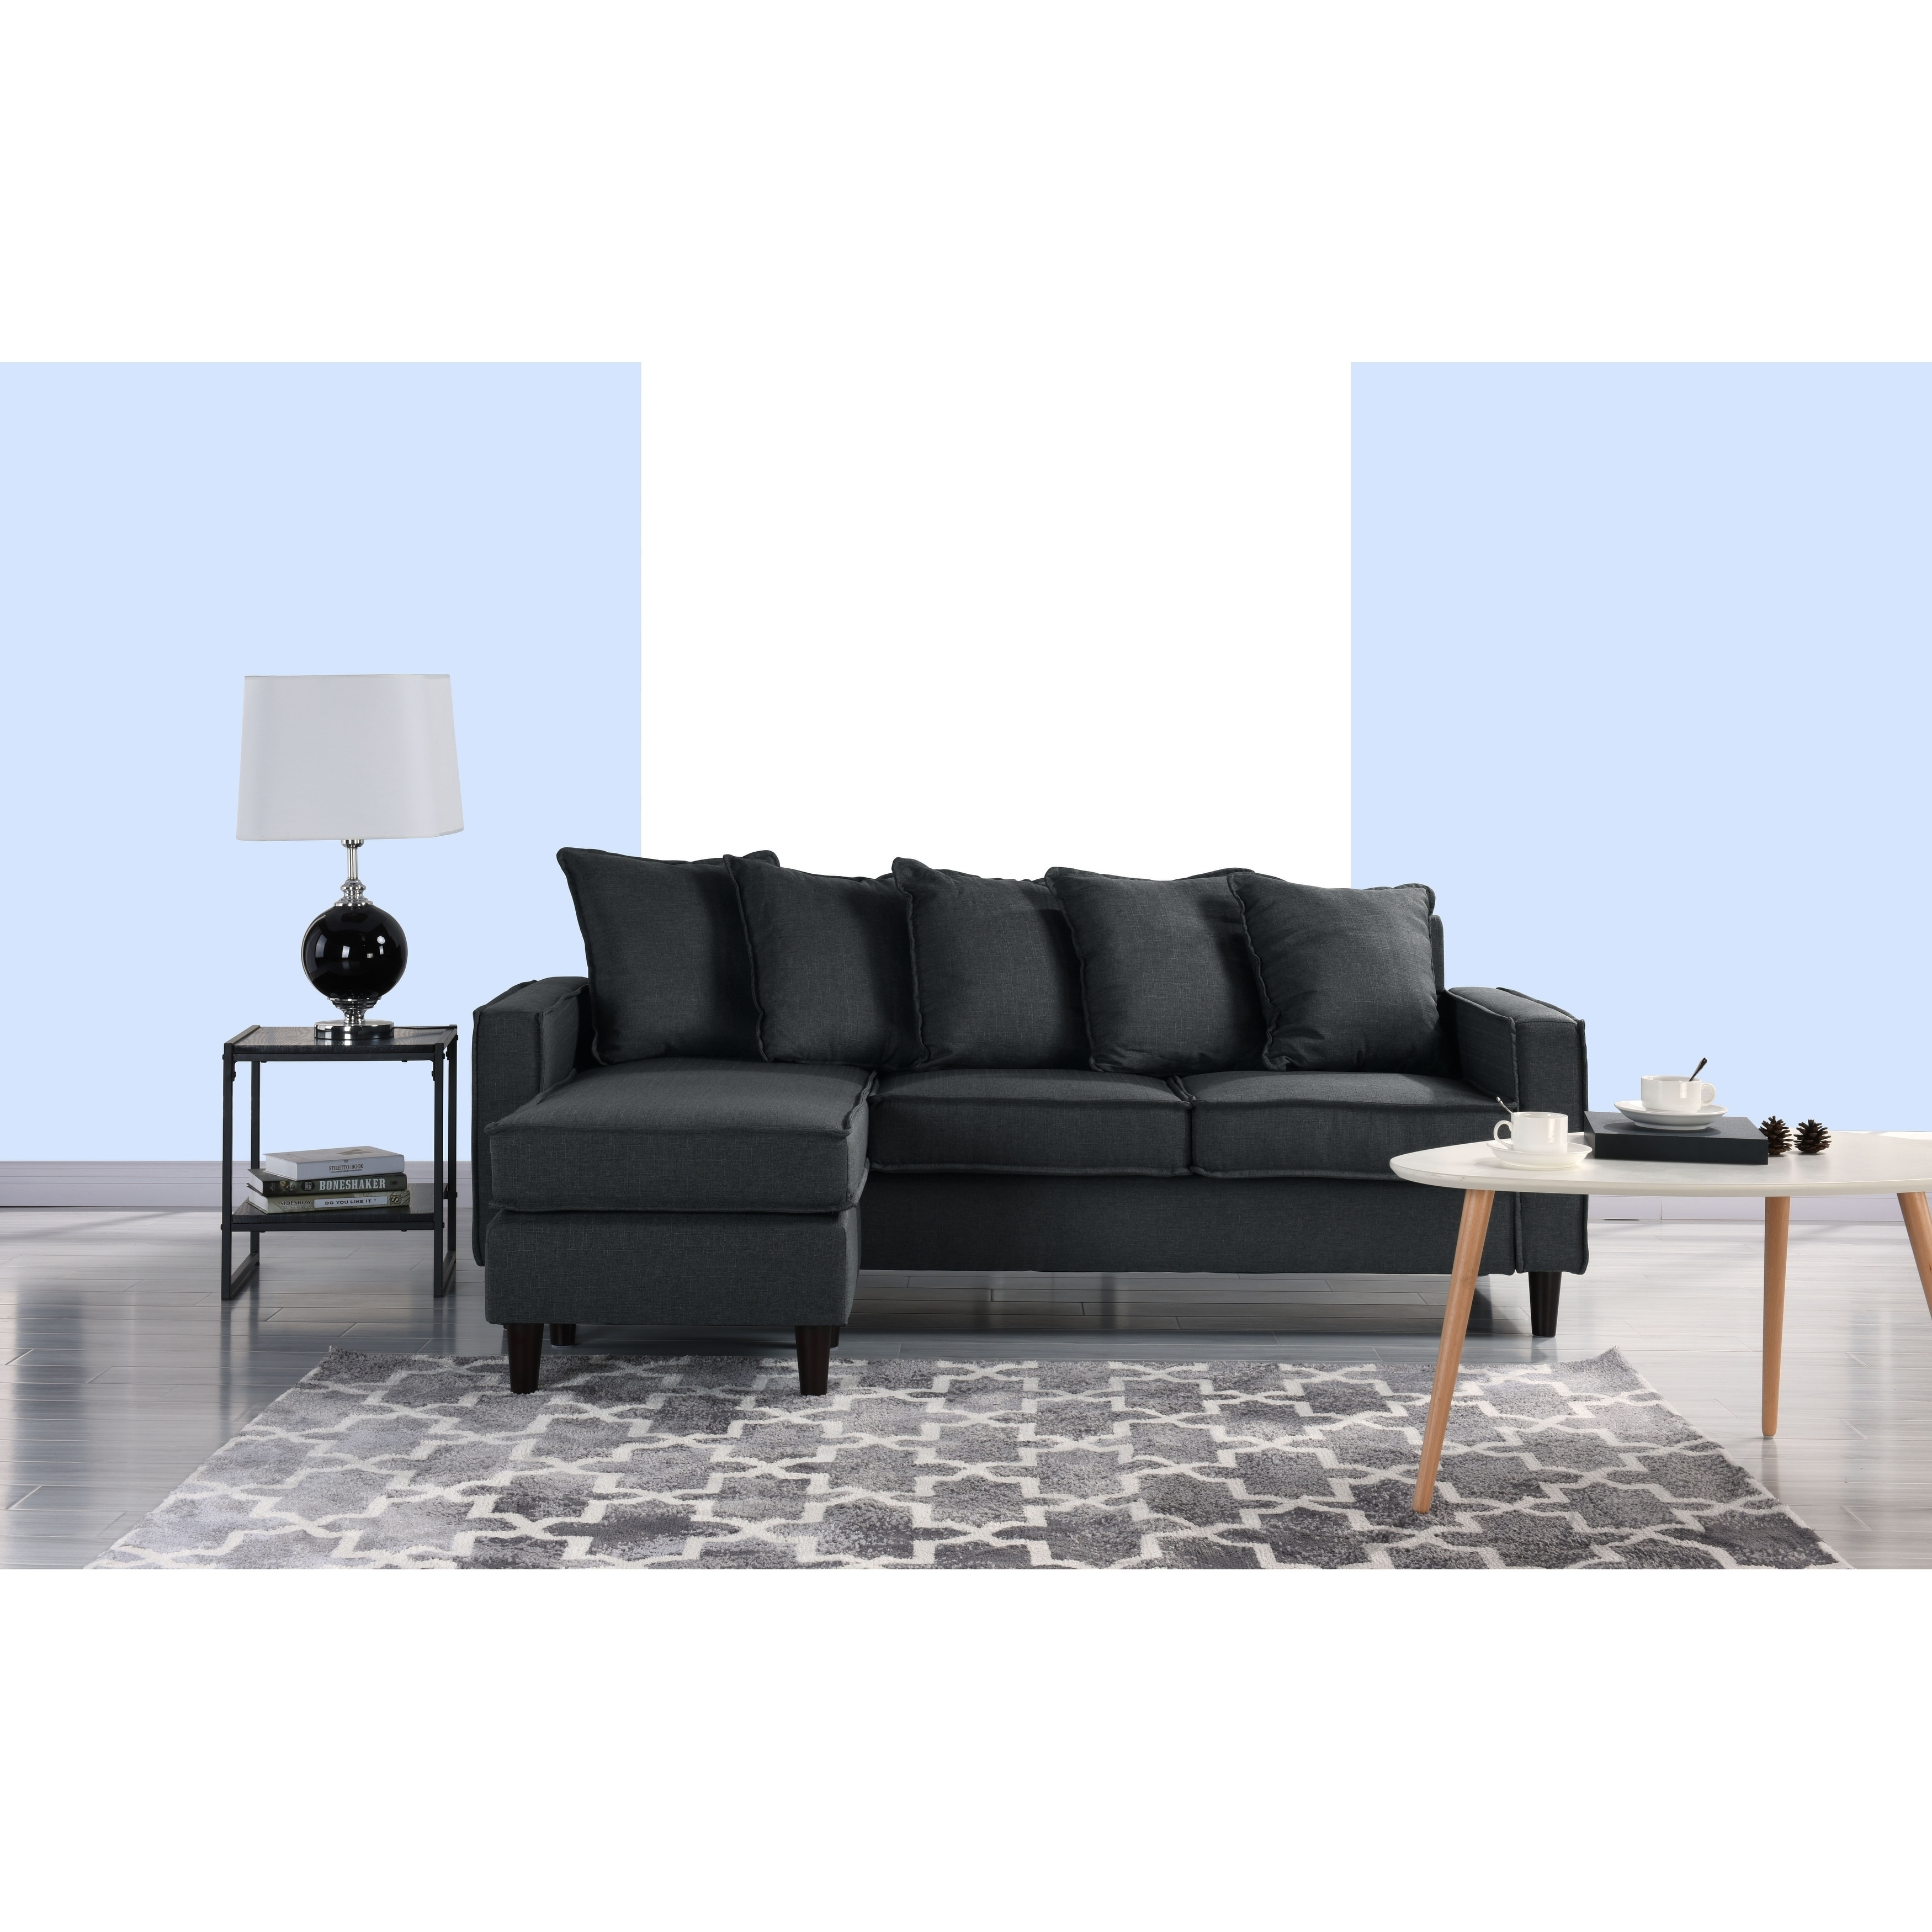 Pleasing Modern Sectional Sofa Small Space Configurable Couch Machost Co Dining Chair Design Ideas Machostcouk